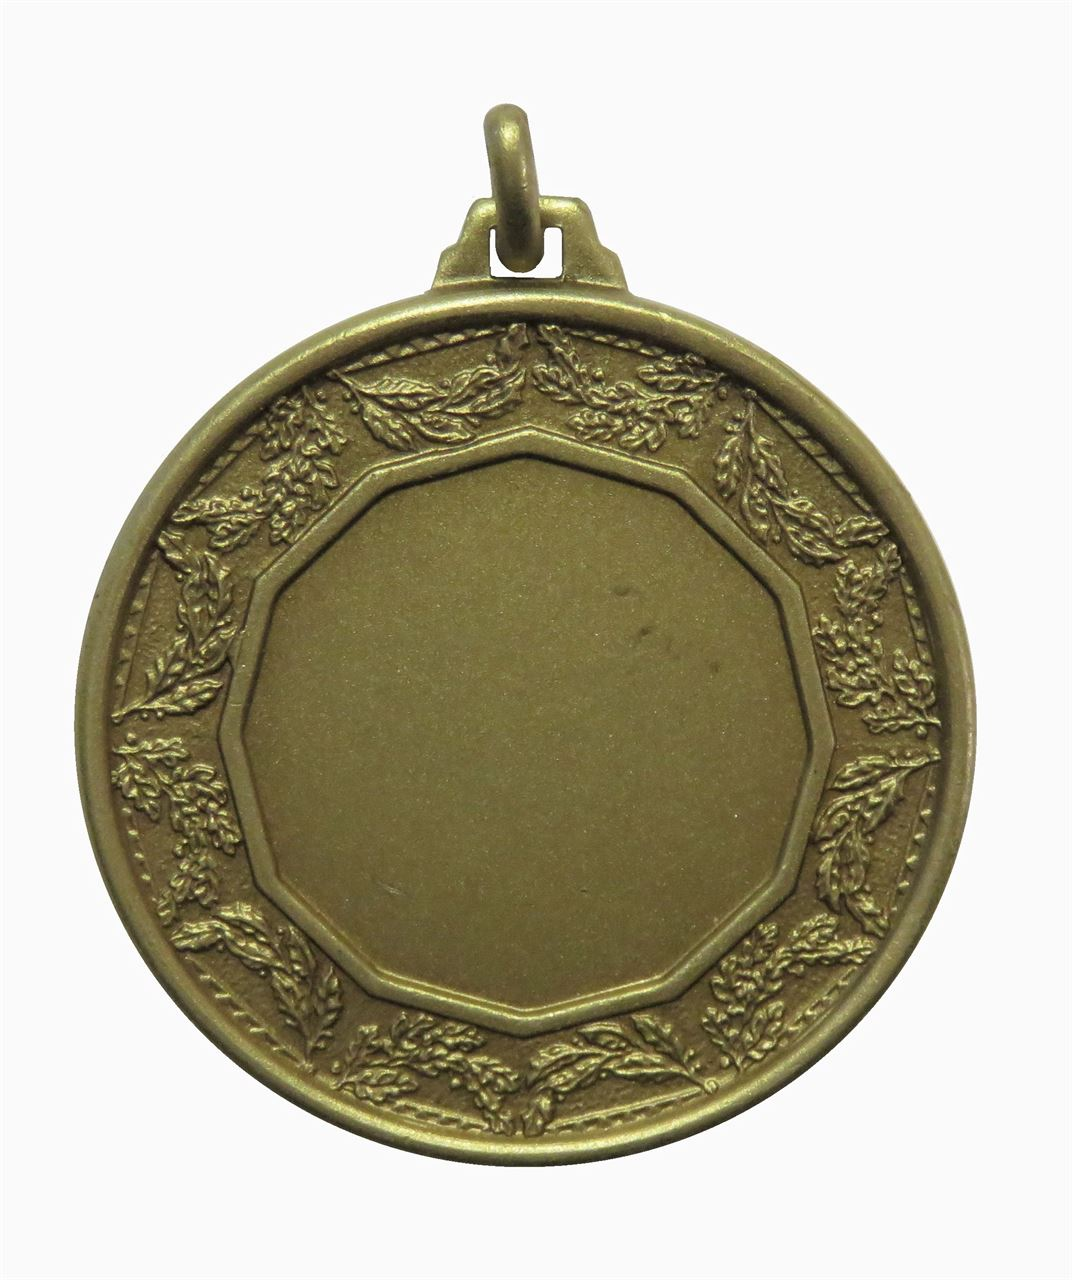 Bronze Quality Classic Laurel Medal (size: 42mm) - 5515E